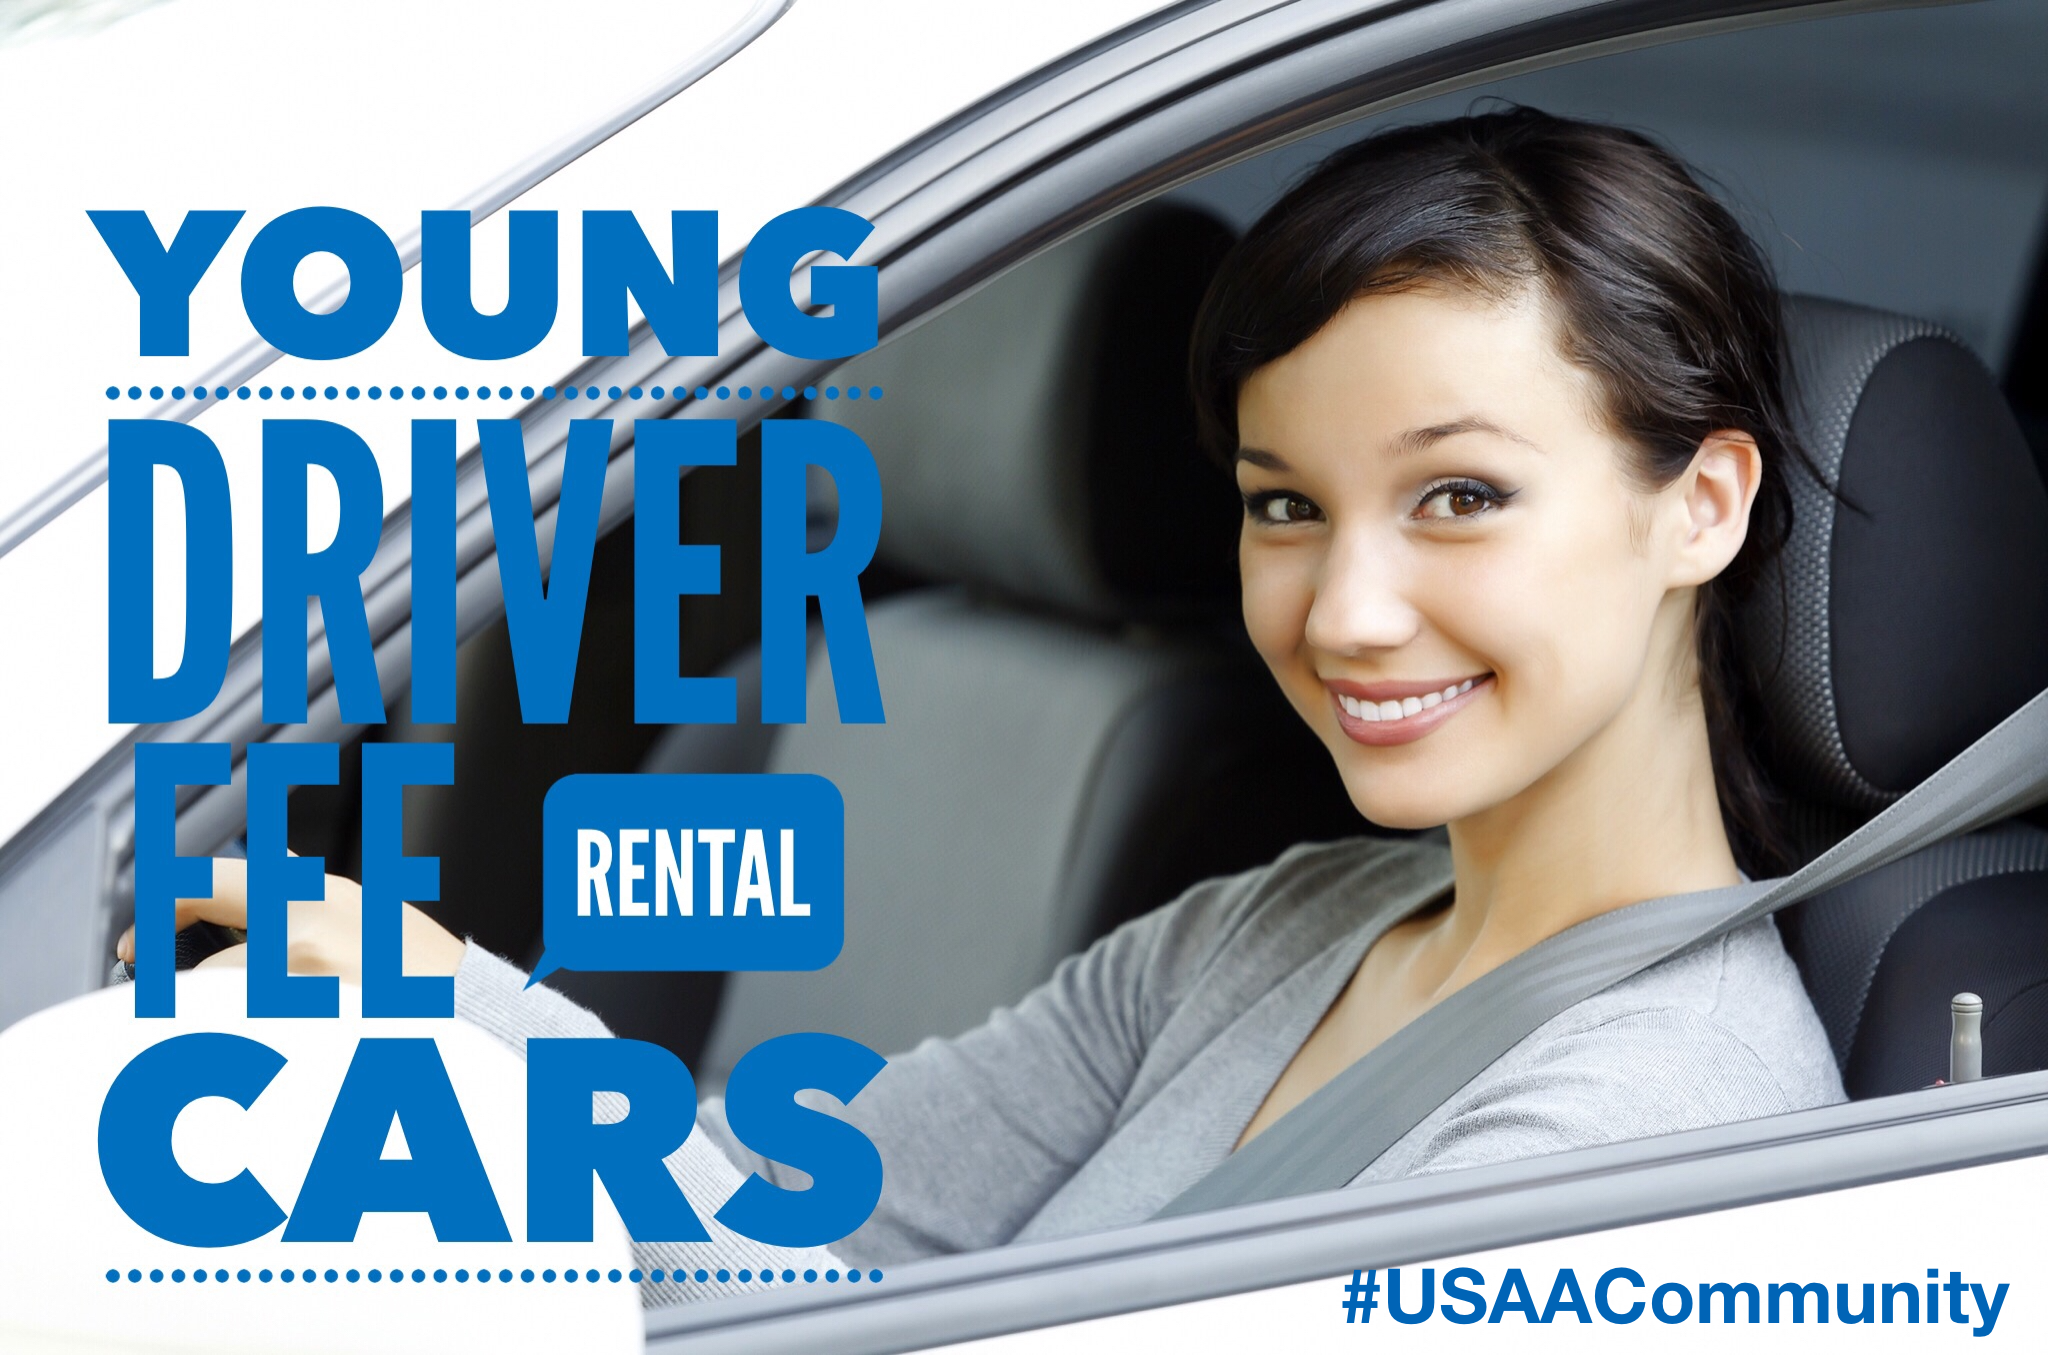 You Asked We Answered: Rental Fees for Young Drivers